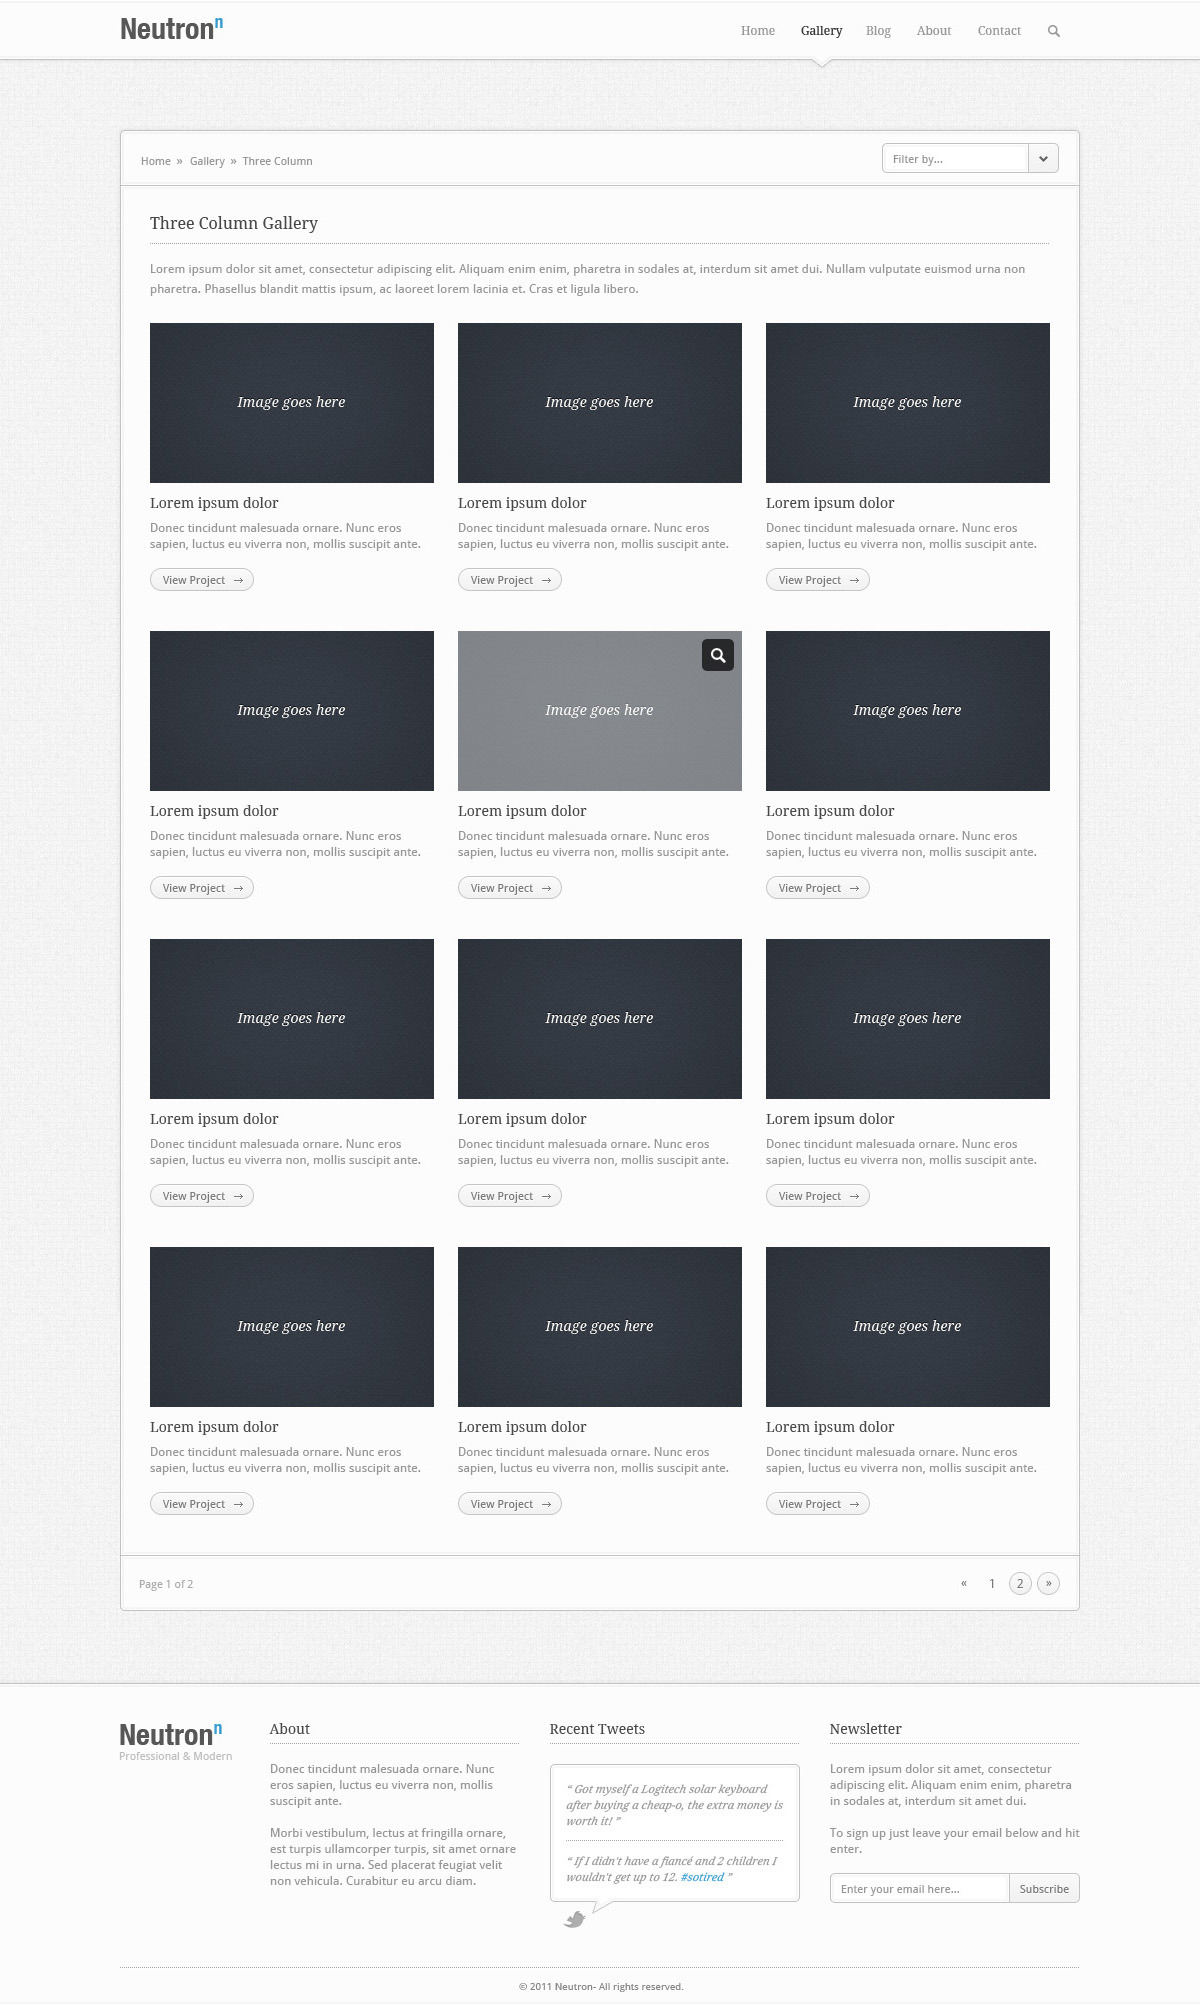 Neutron - PSD Theme - The Gallery section of the Neutron theme, containing sections for: A brief description of your work, 3 Columned Image Gallery, Pagination, plus the Header and Footer sections.